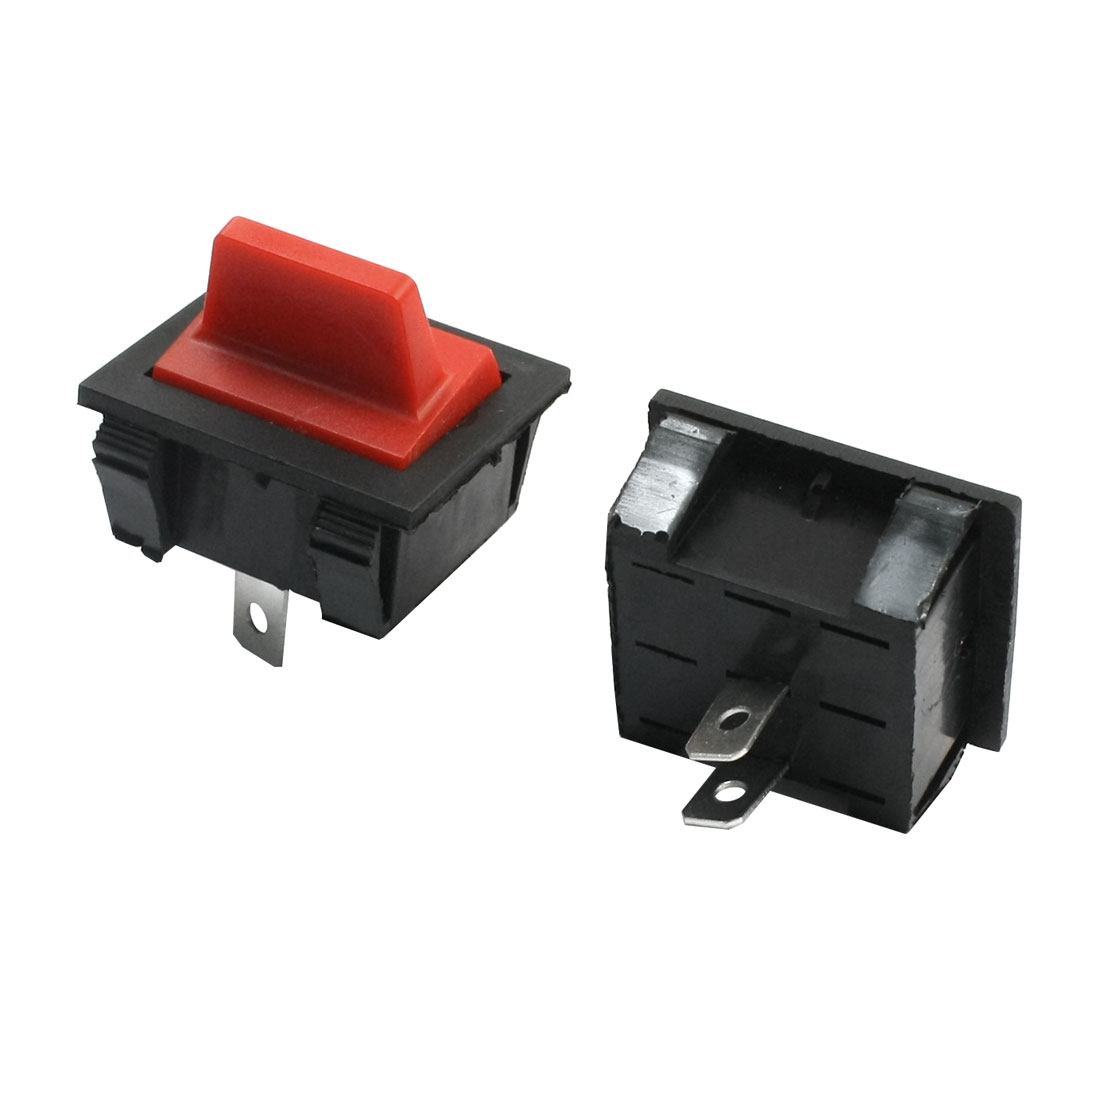 Electric Generator Part SPST 2-Position ON-OFF Snap in Mount Red Black Plastic Boat Rocker Switch AC250V 15A AC125V 20A2Pcs